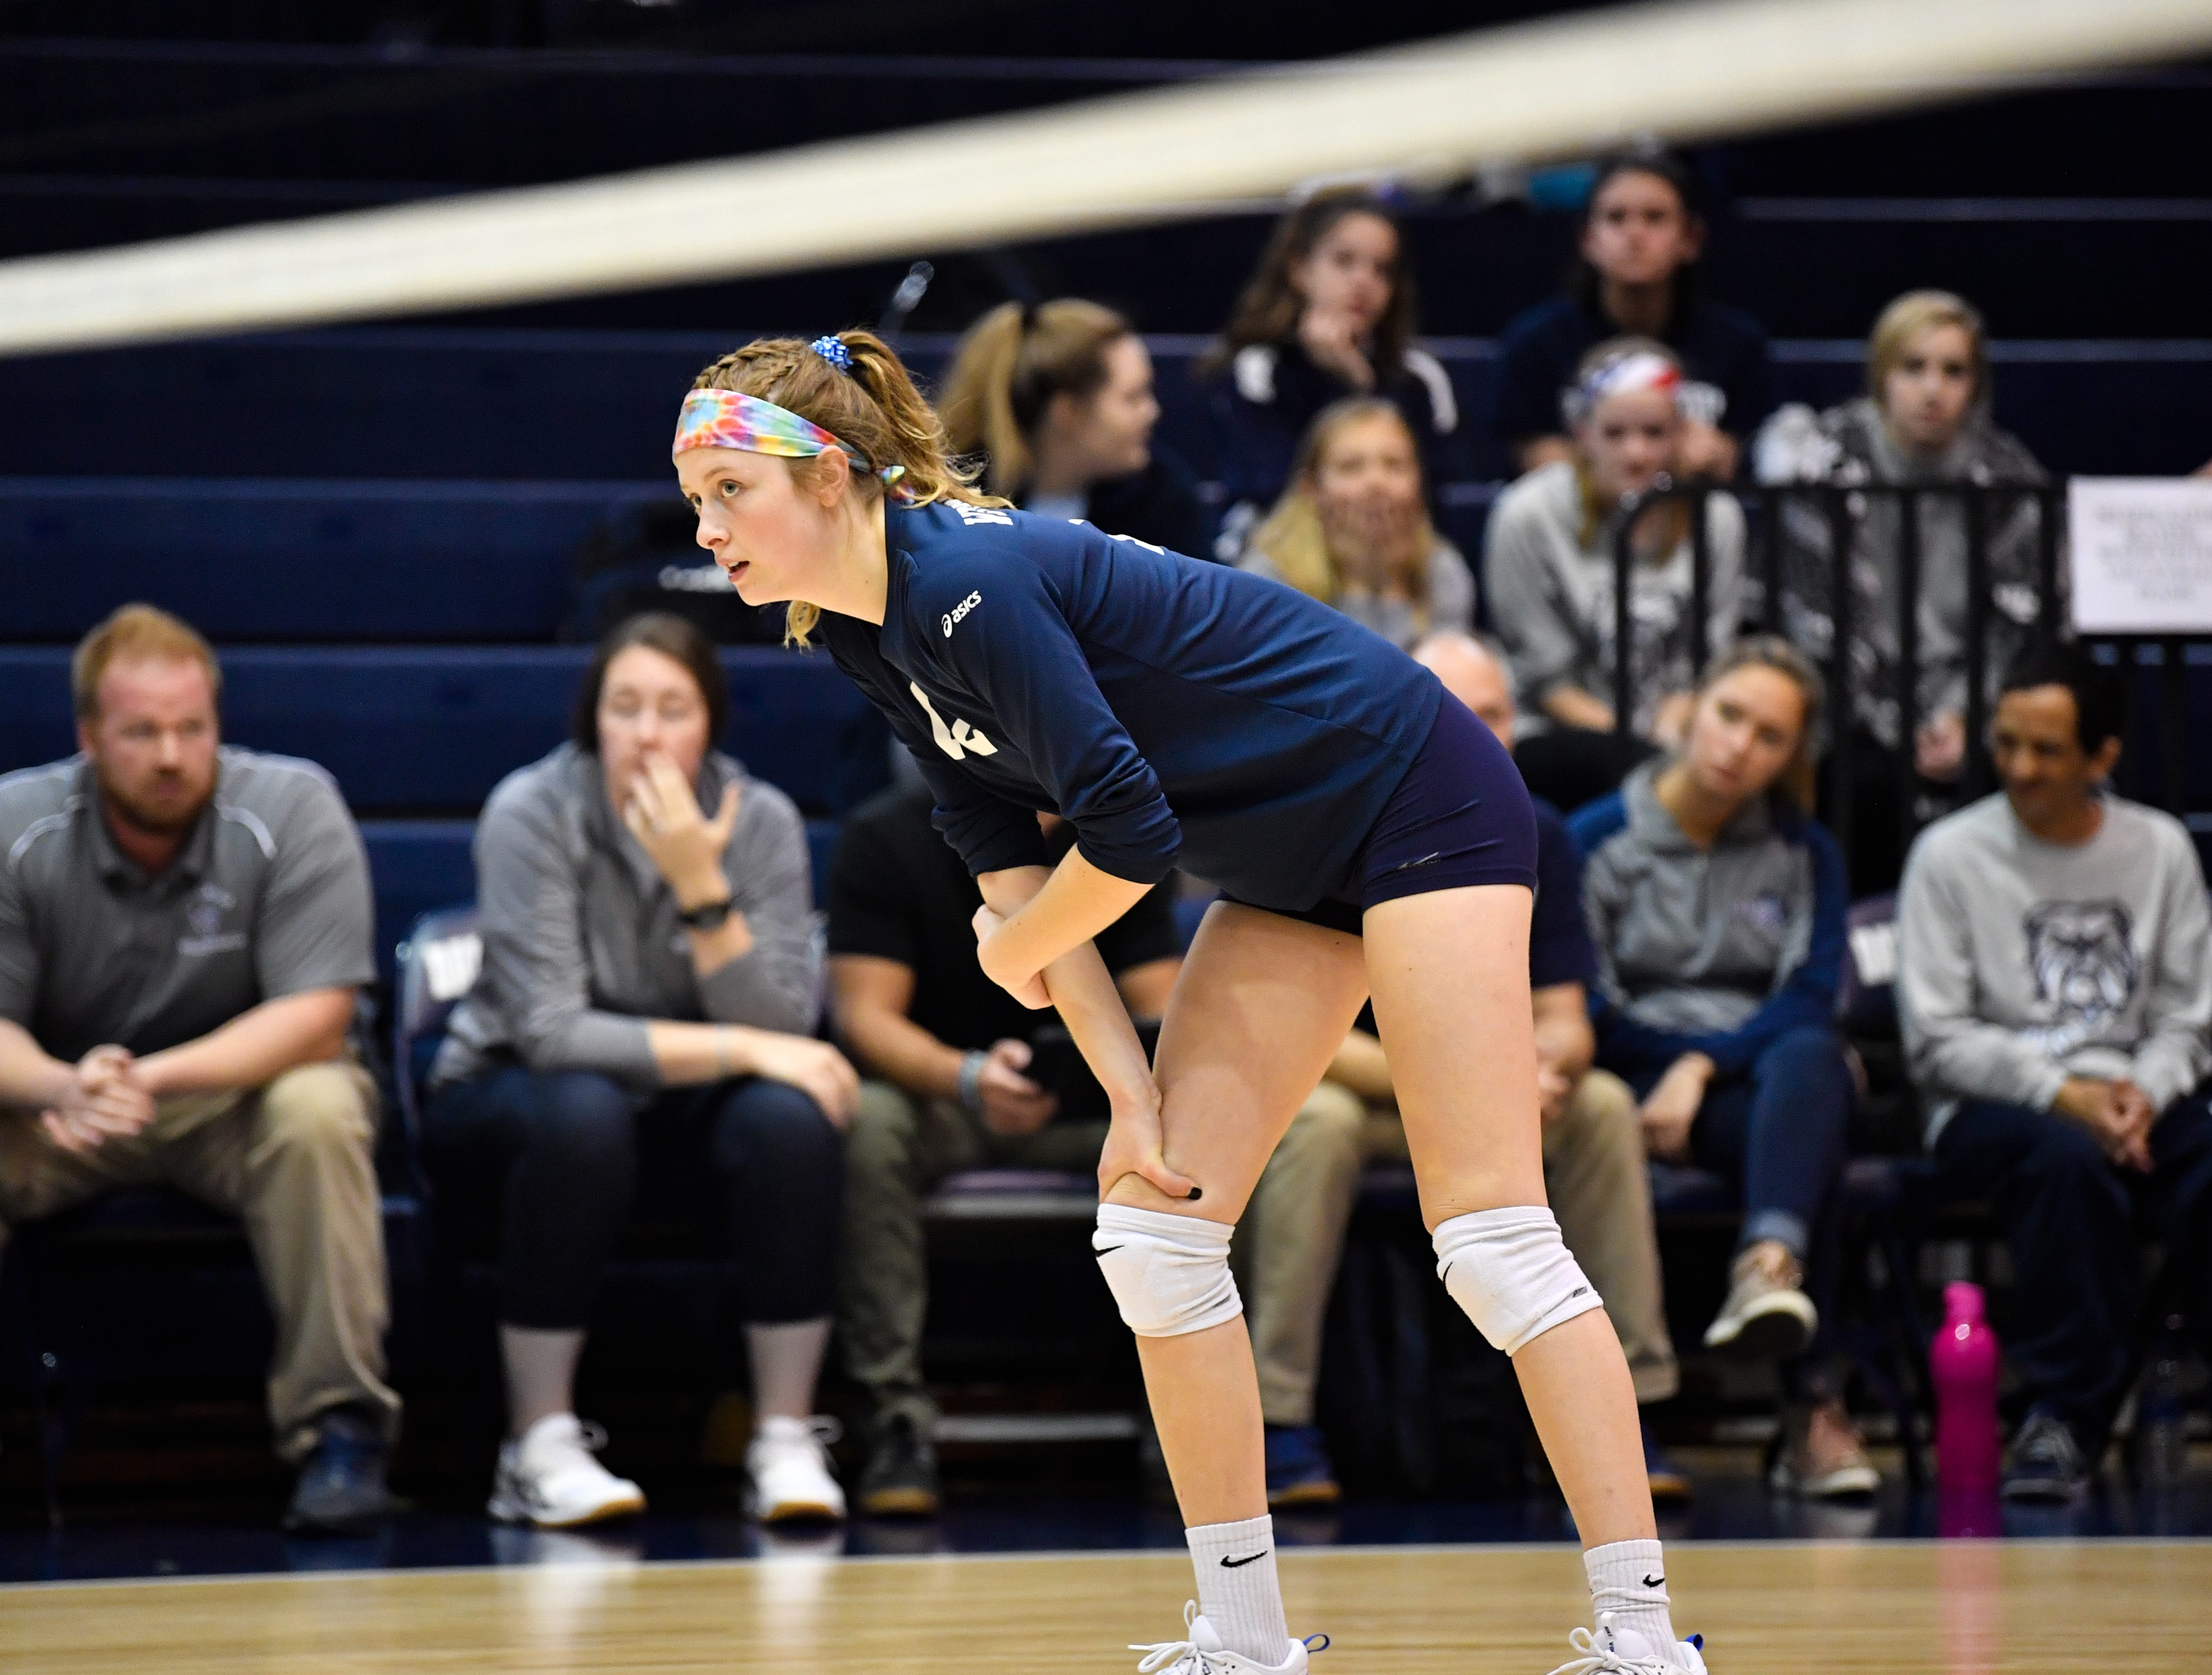 Kristen Bowser (12) sizes up the competition during the YAIAA league volleyball tournament semifinals between West York and Dover, Tuesday, October 23, 2018. The Bulldogs defeated the Eagles 3-1.